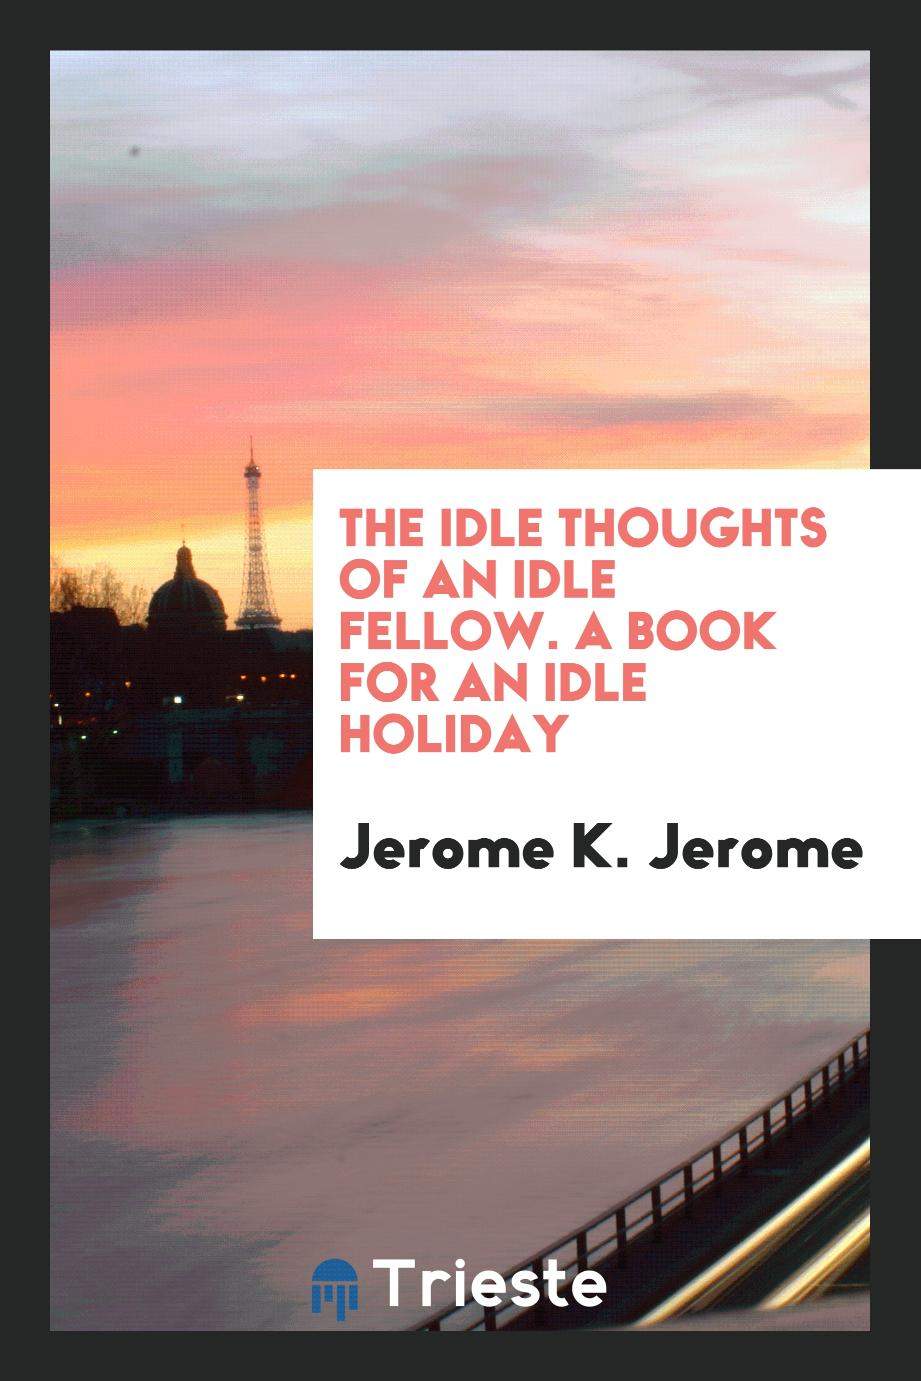 The Idle Thoughts of an Idle Fellow. A Book for an Idle Holiday